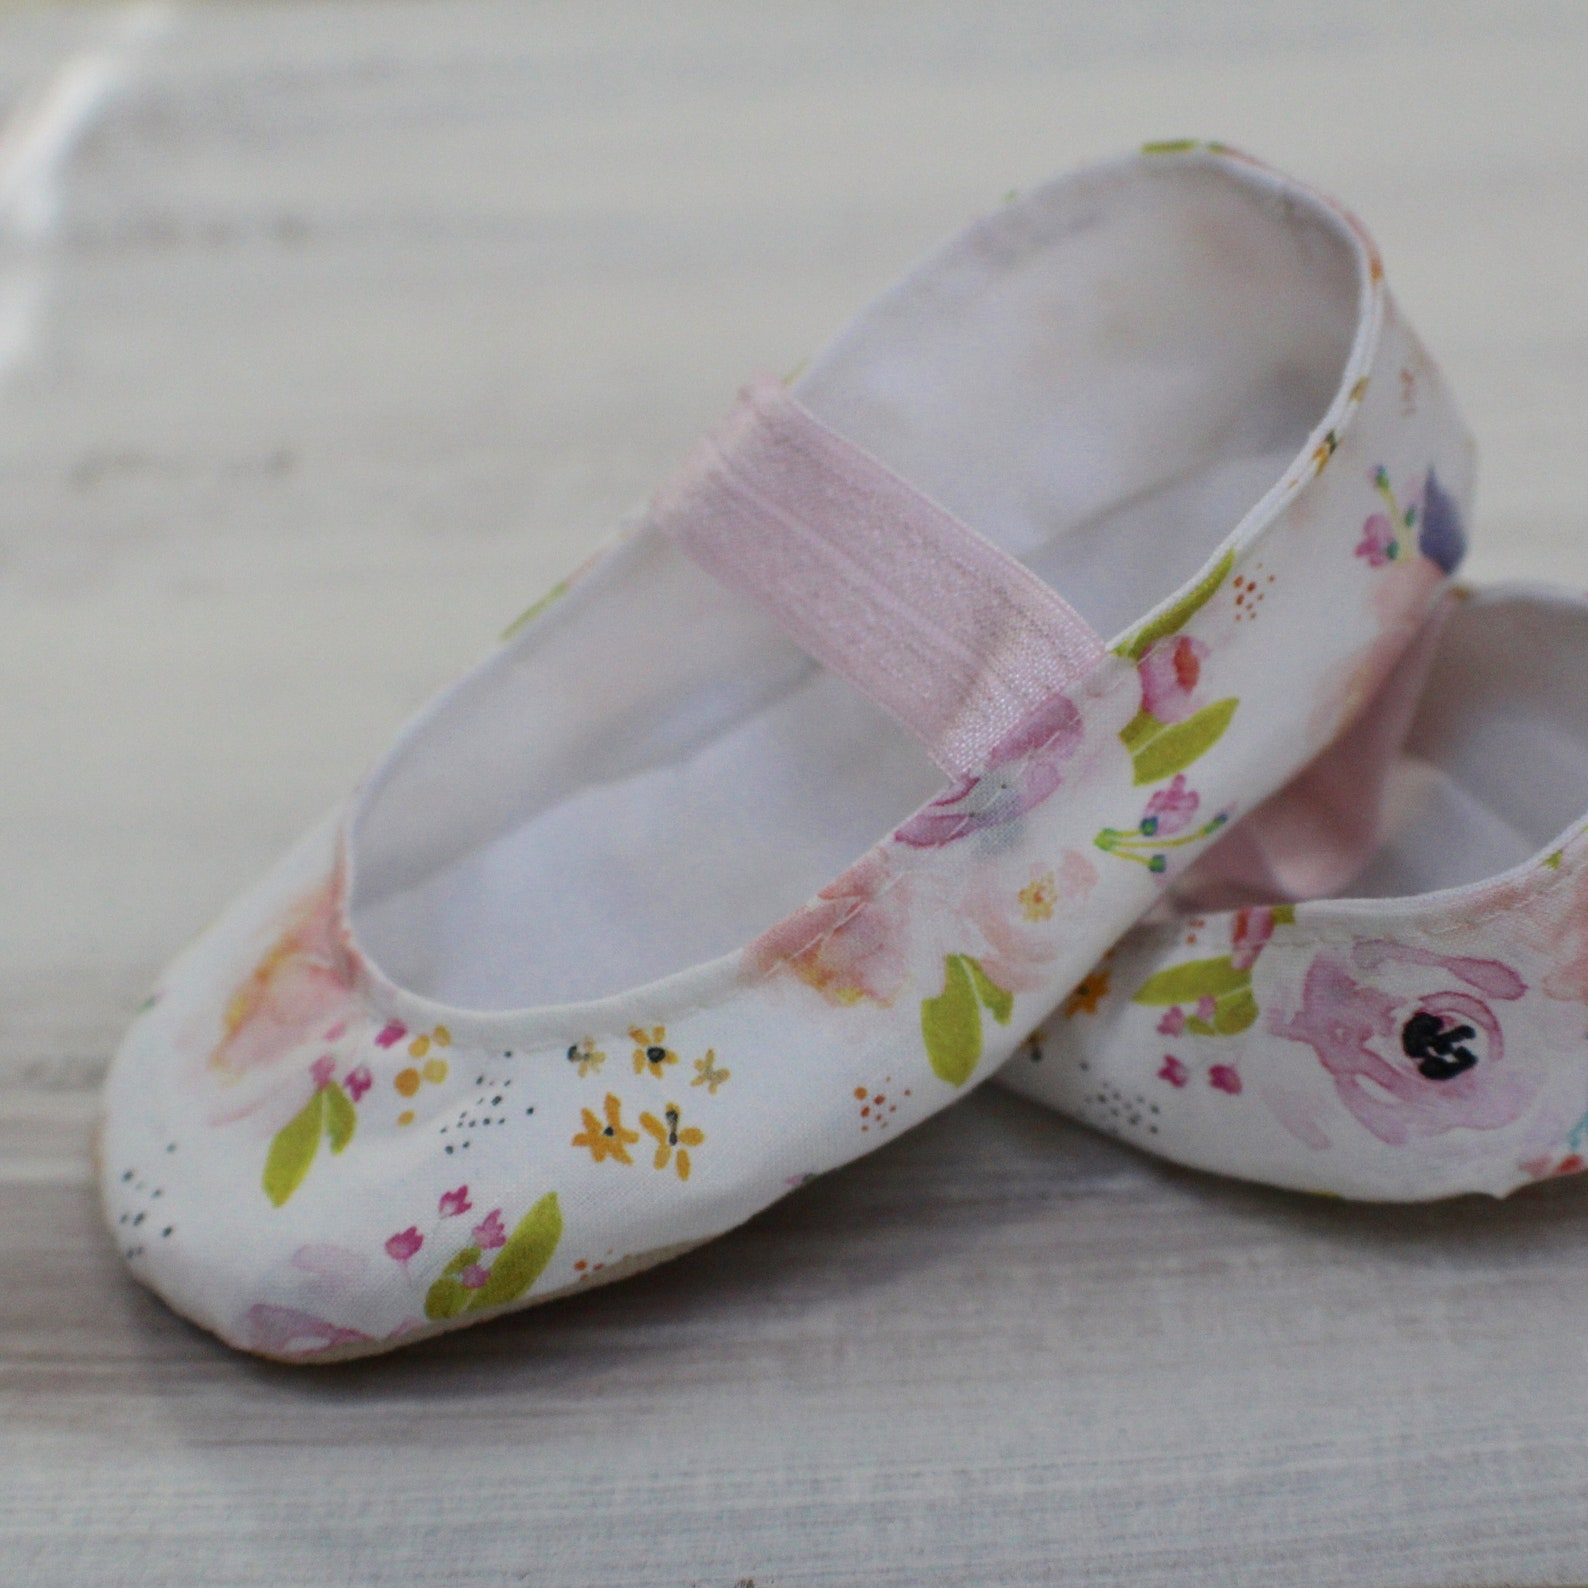 watercolor floral, white and pink, baby girl shoes - ballet flats - toddler girl shoes - princess shoes